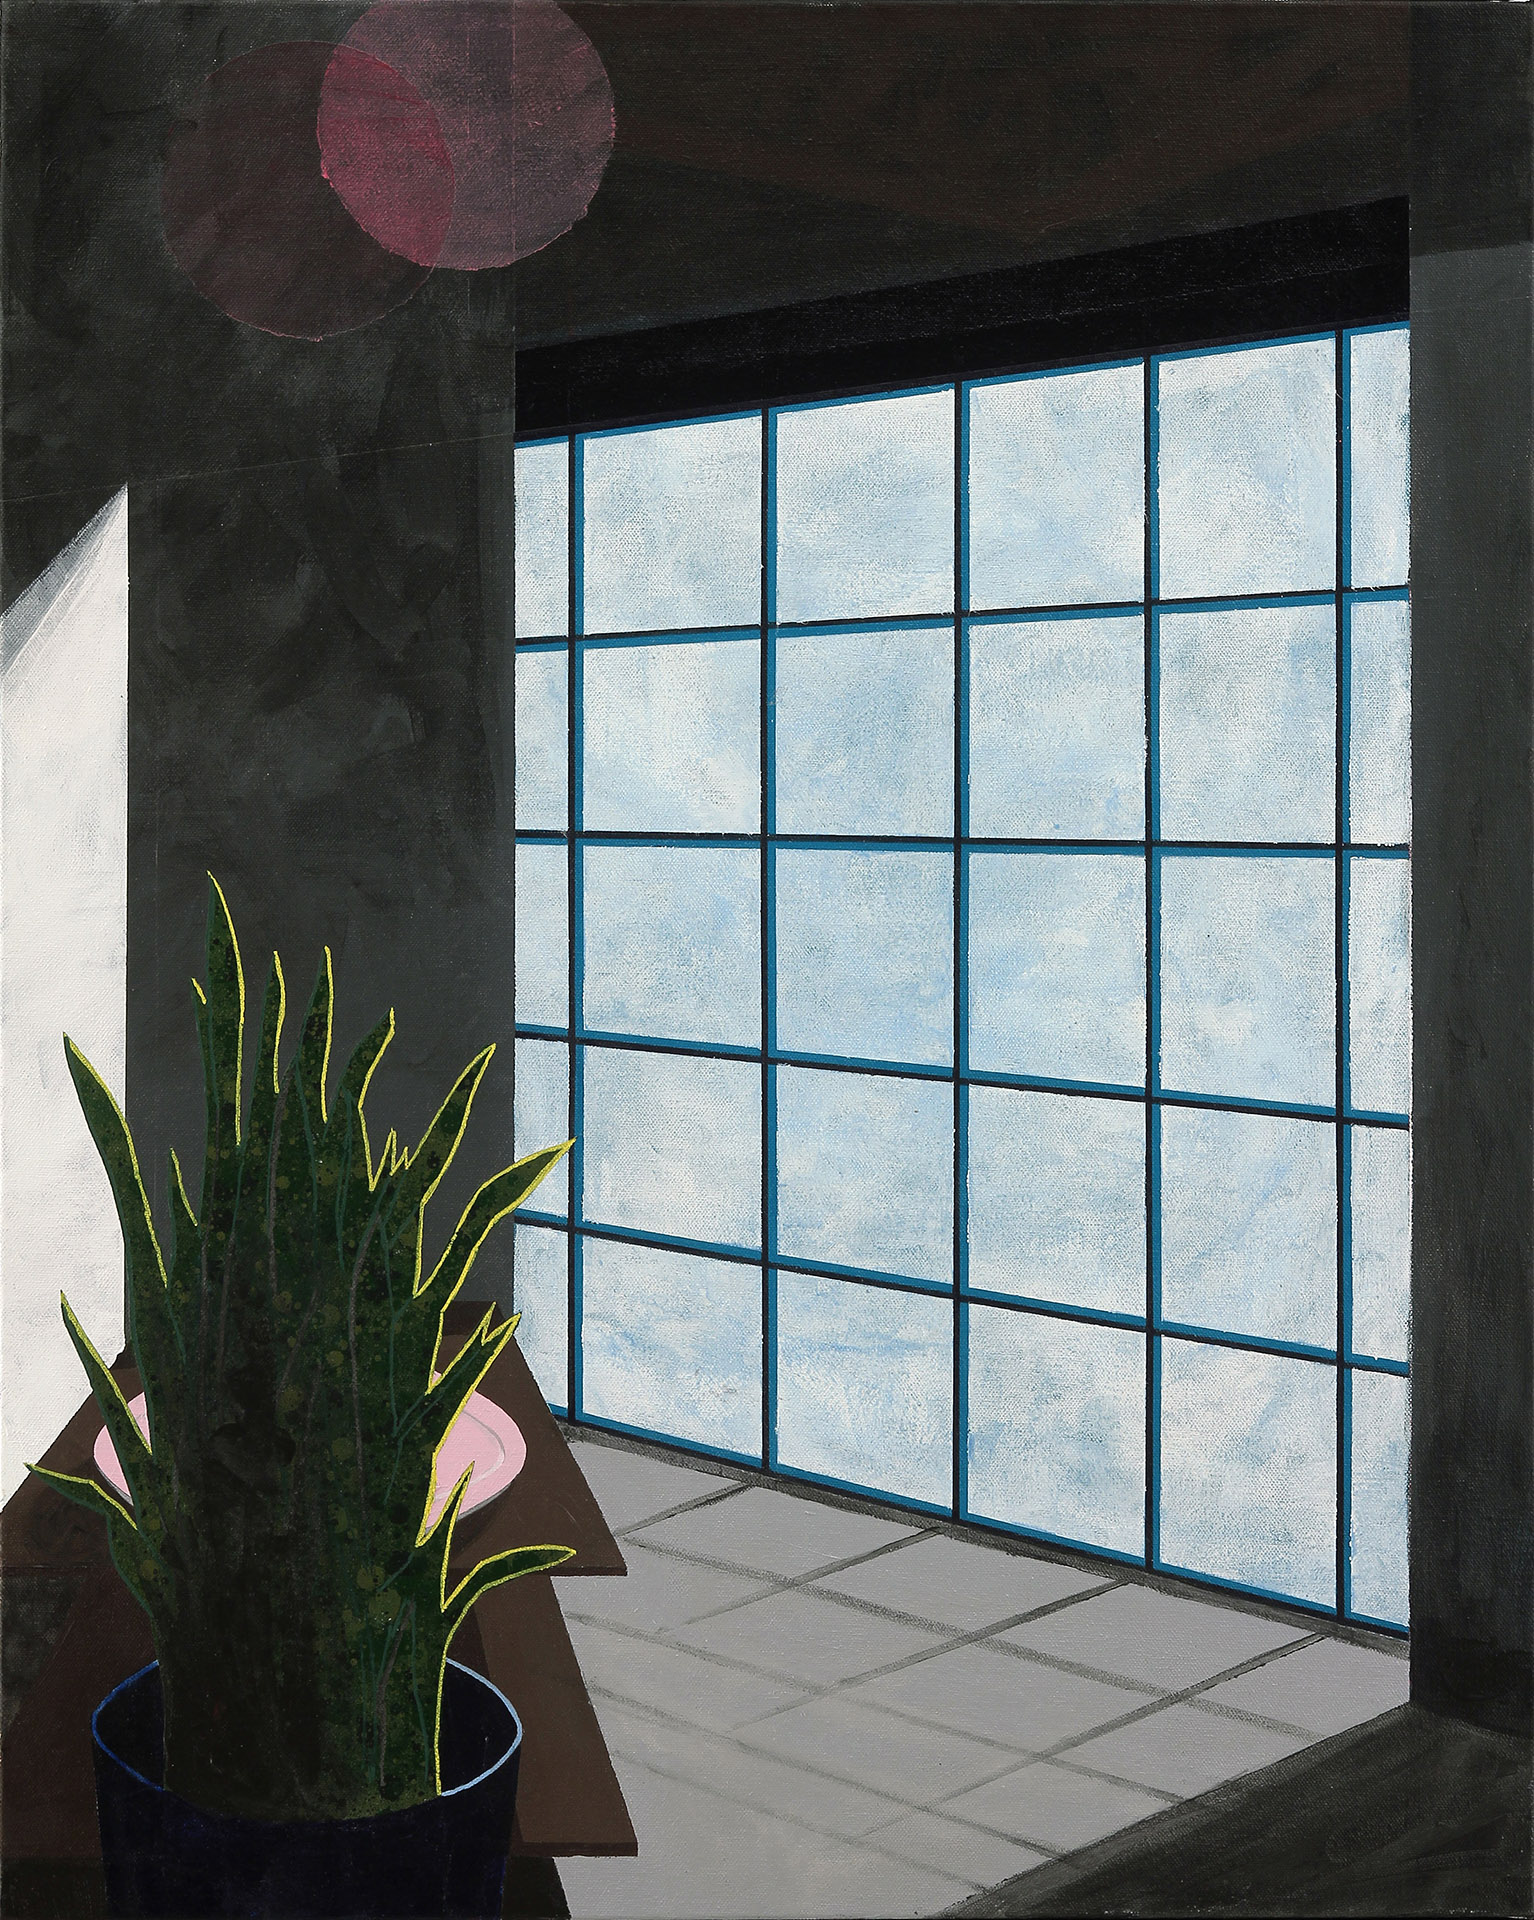 Window, 2017, Acrylic, spray paint, marker on canvas, 30 x 24 inches